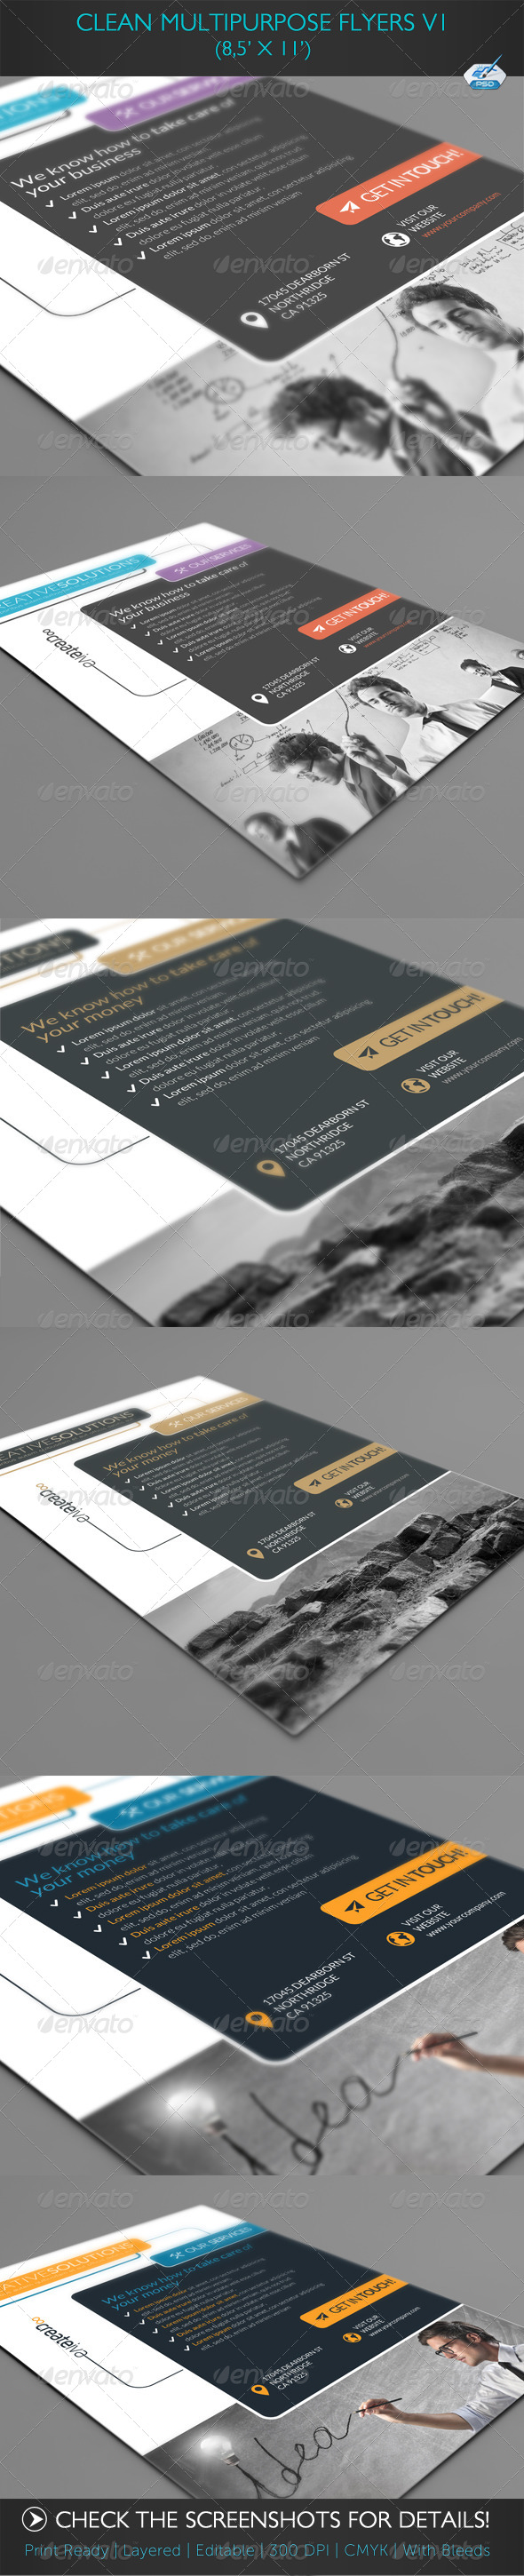 Clean Multipurpose Flyers Vol2 - Corporate Flyers